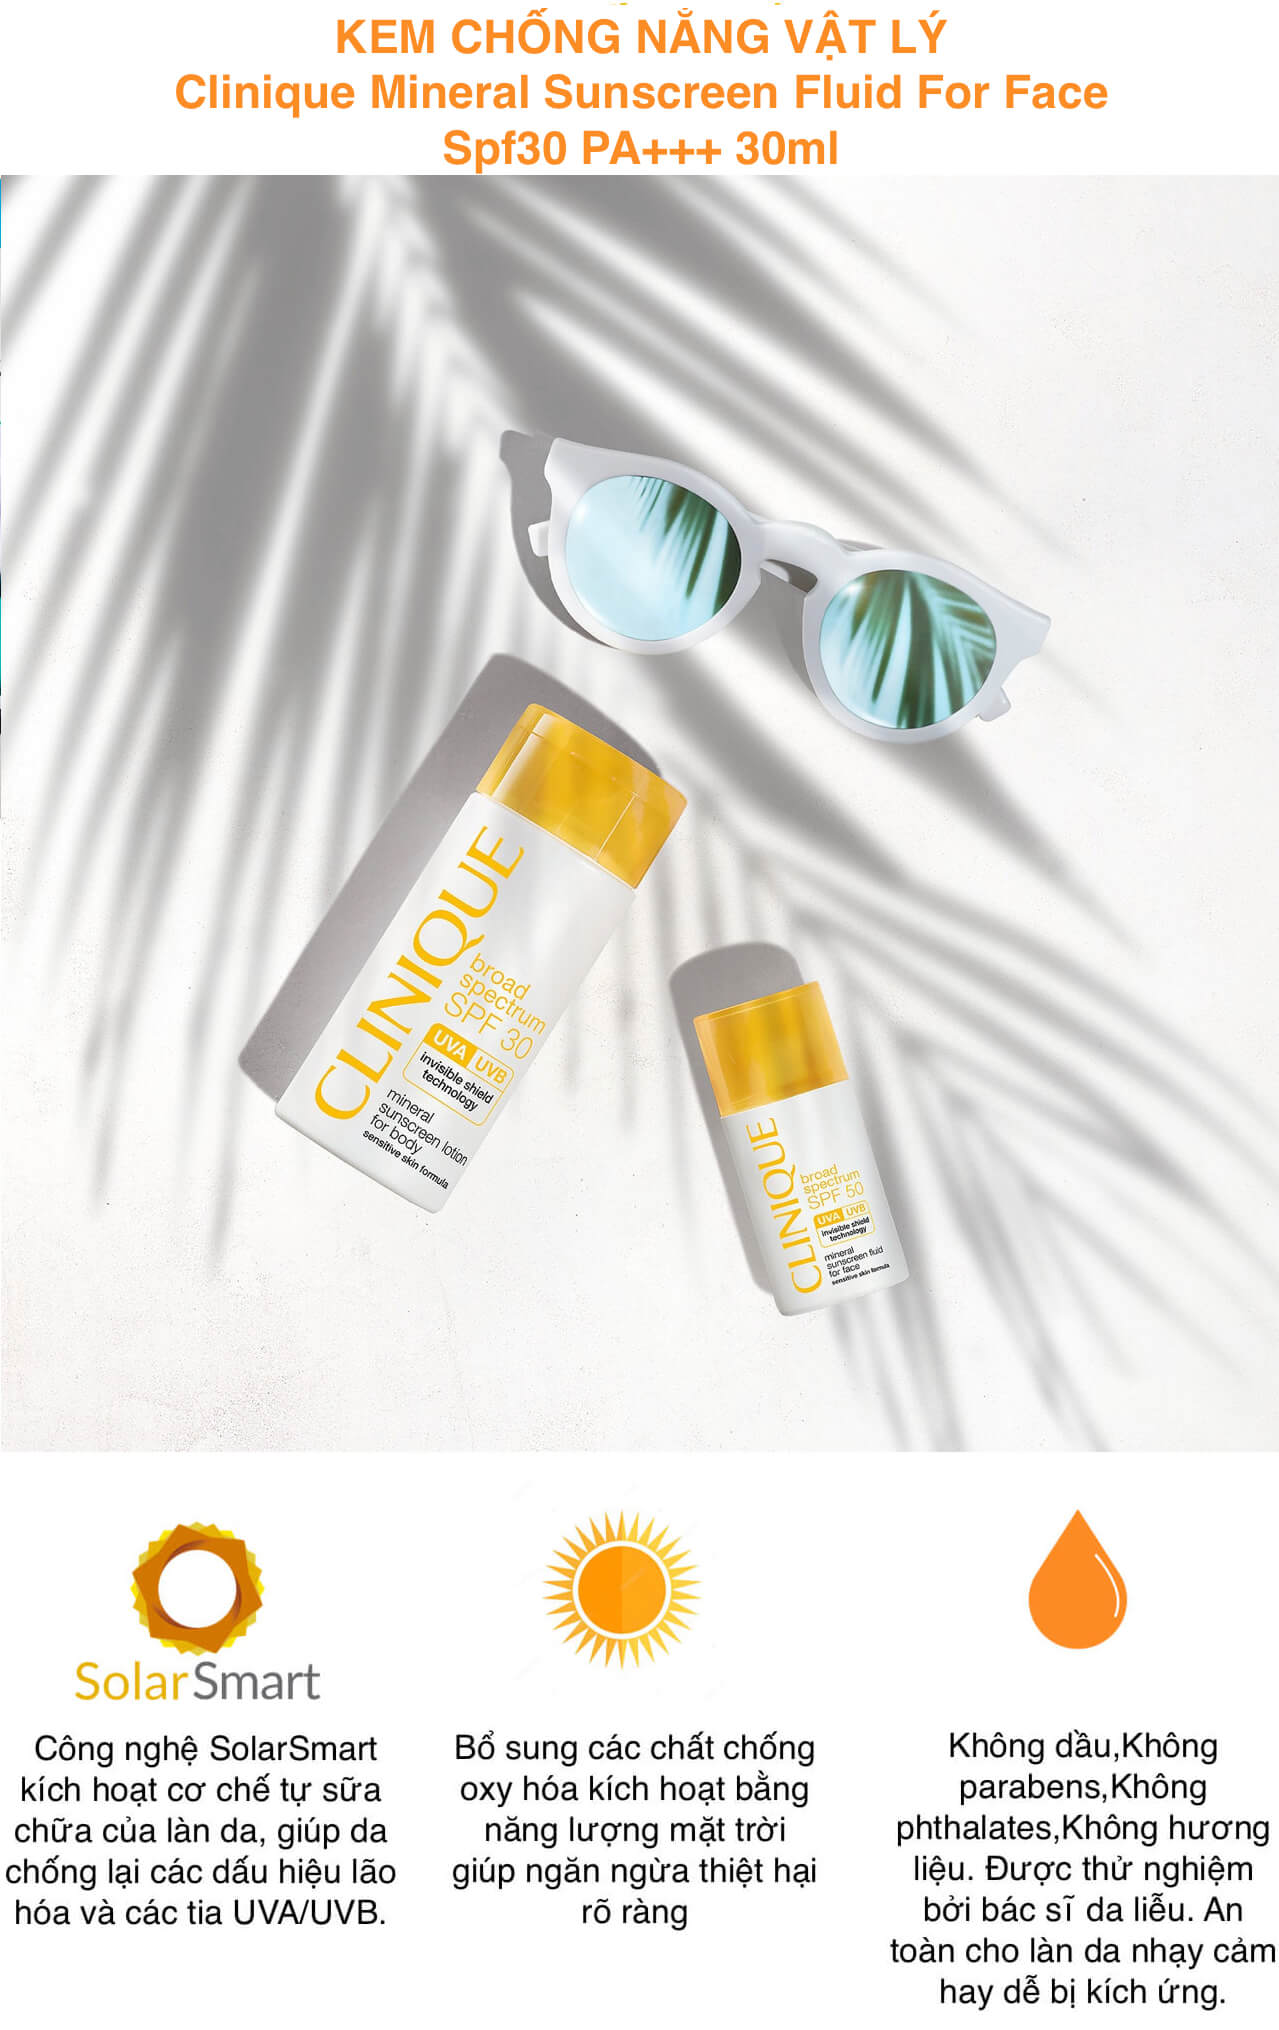 Clinique Mineral Sunscreen Fluid For Face Spf30 PA+++ 30ml